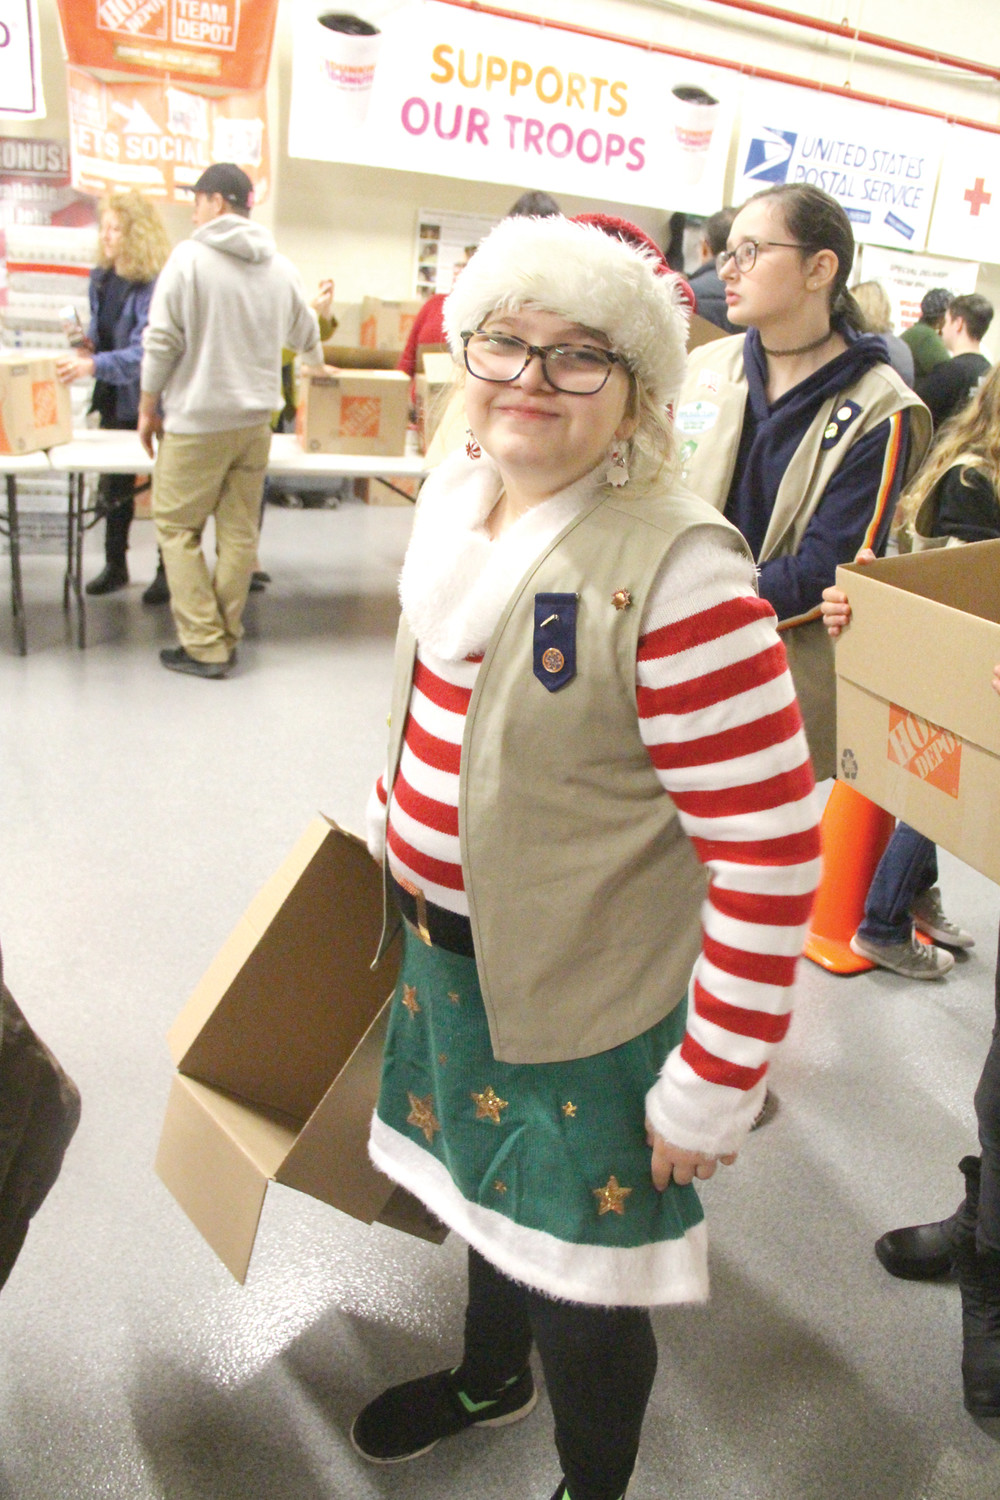 DRESSED FOR THE ROLE: Shannon Doyle, a member of Girl Scout Troop 922 of Smithfield, wore her Santa's helper outfit for the occasion.